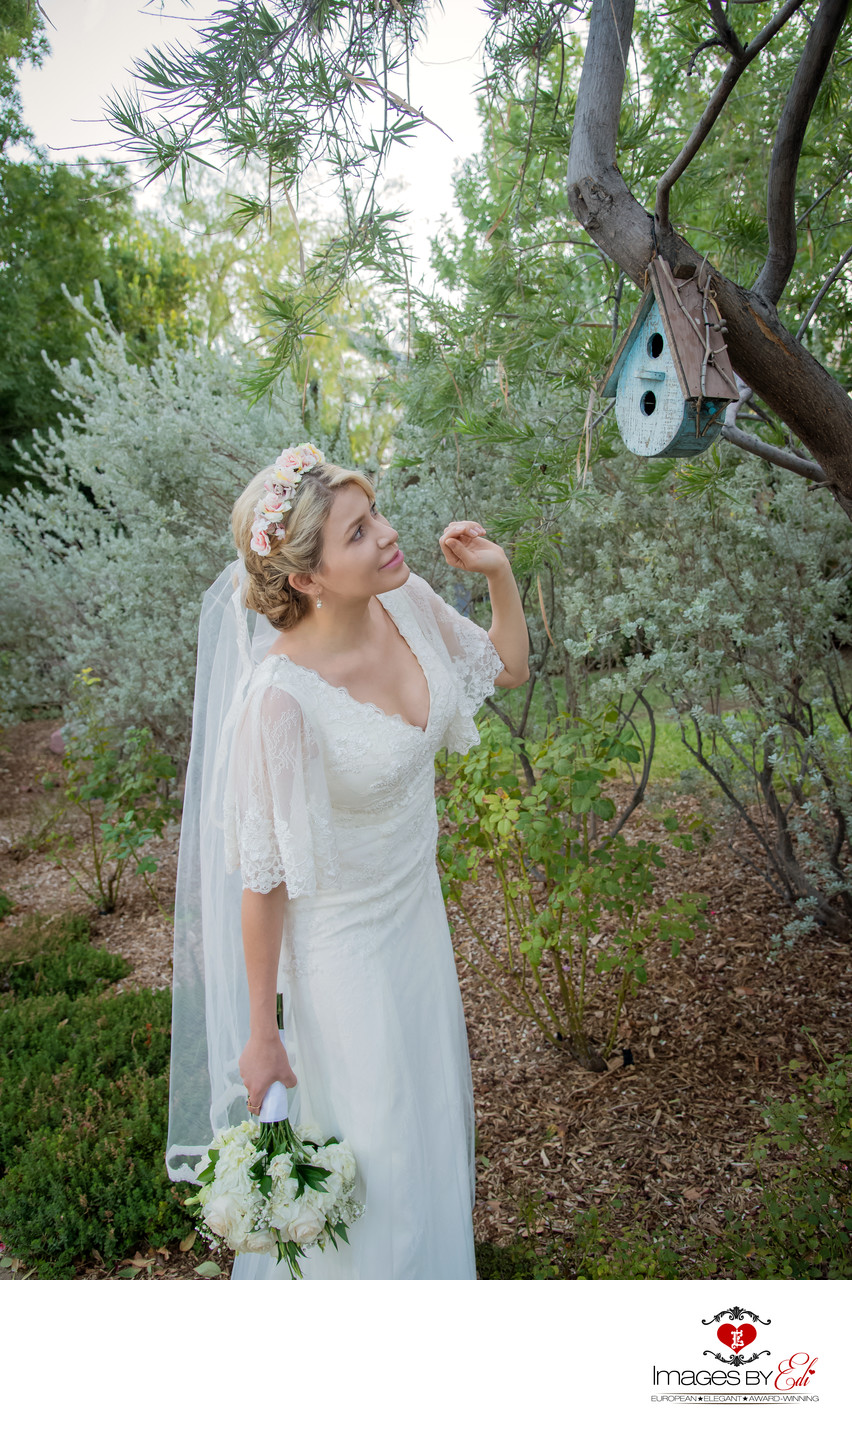 Springs Preserve bride is checking the bird feeder